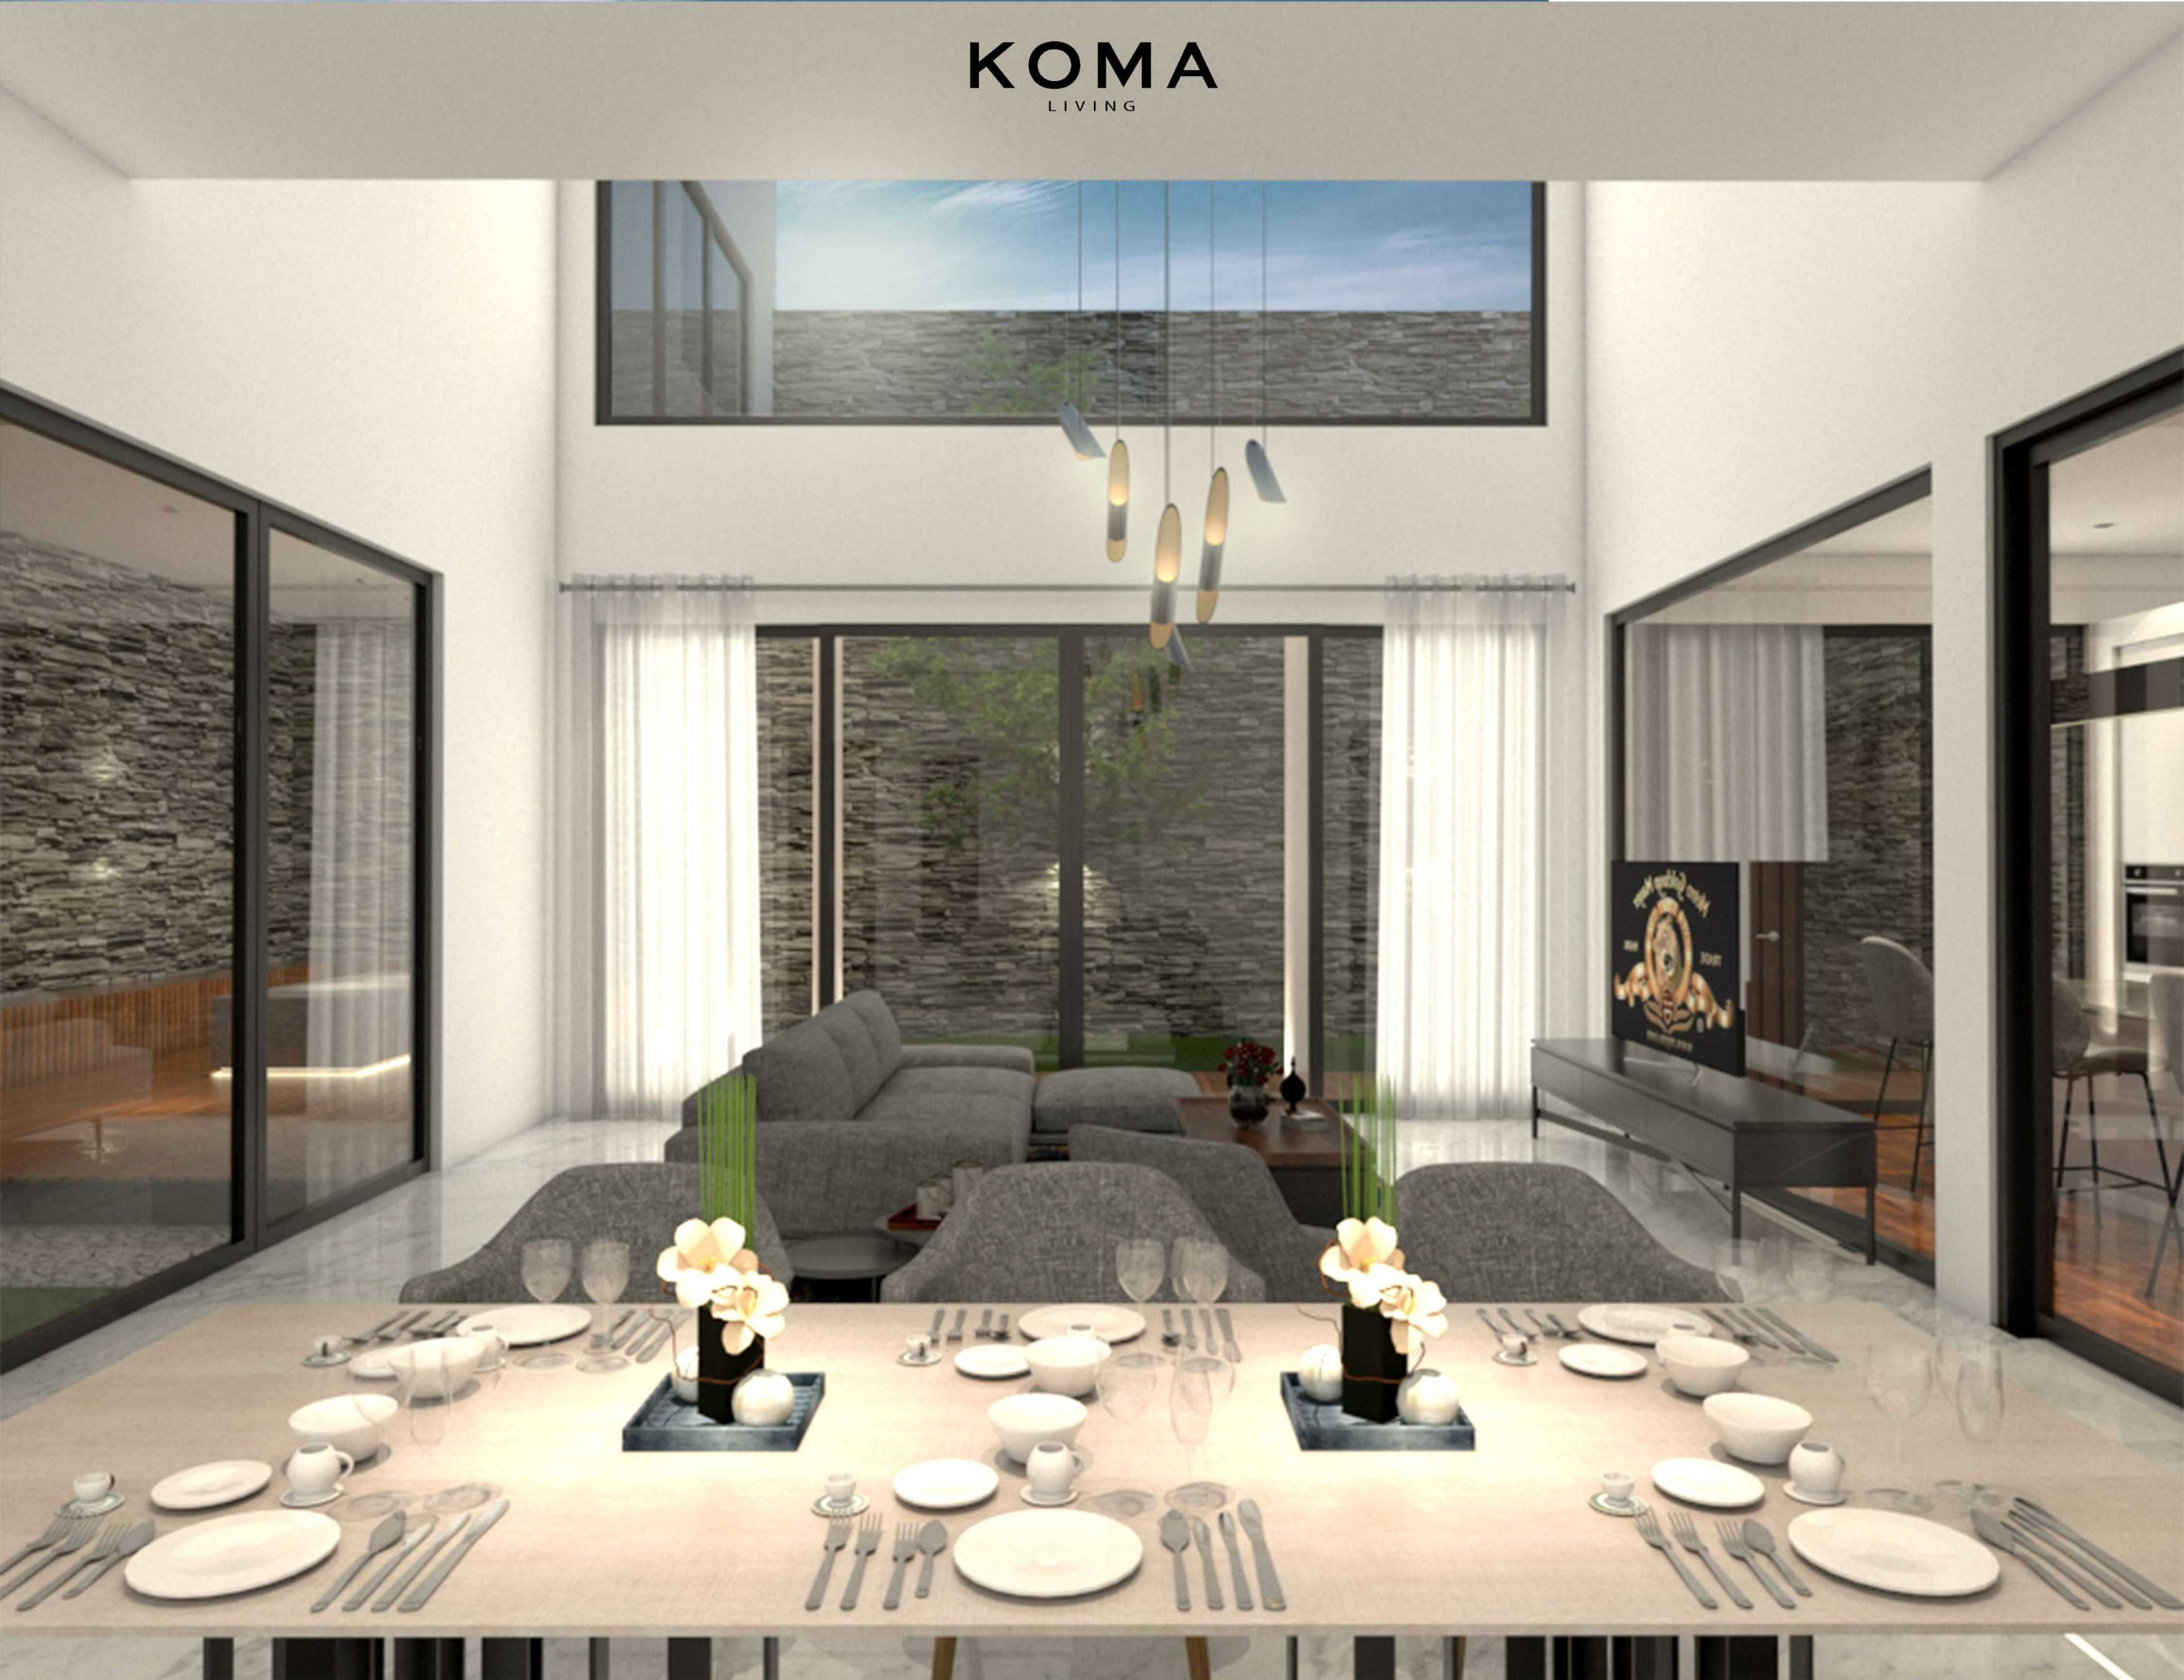 Koma Bs House Jl. Jalur Sutera No.17, Kunciran, Pinang, Kota Tangerang, Banten 15143, Indonesia Jl. Jalur Sutera No.17, Kunciran, Pinang, Kota Tangerang, Banten 15143, Indonesia Koma-Bs-House Contemporary Bs House Located At Alam Sutera, Tangerang, Indonesia, A Renovation From Row House Built By Alam Sutera Realty And Redesigned By Koma Architect, The Architectural Concept For The House Is Elegant And Sleek DesignWith Rich Natural Material Combined With TakingFull Advantage Of Relating To Its Natural Surroundings, MakeThis House Have AStrong Relationship Between The House And Nature. 70232